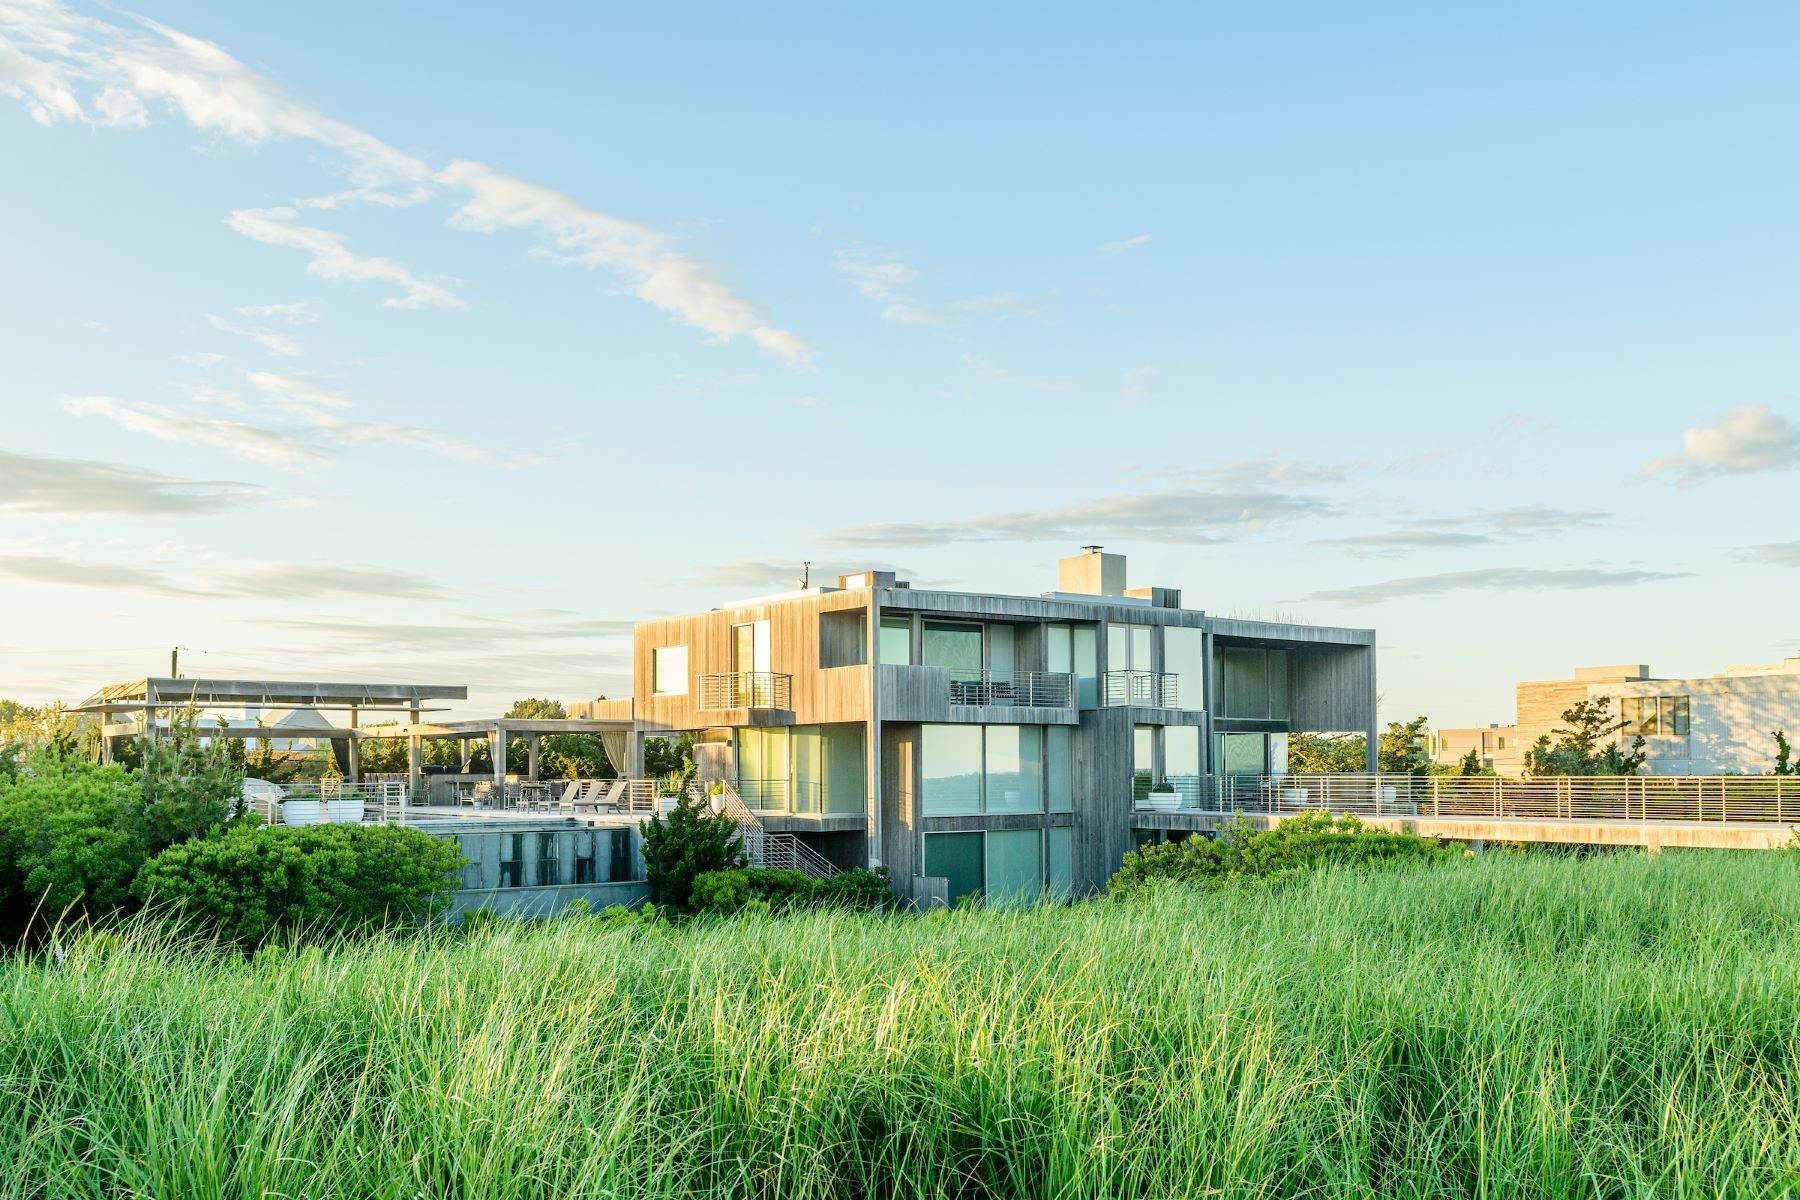 Single Family Homes for Sale at The Best of The Best Oceanfront 67 Surfside Dr Bridgehampton, New York 11932 United States